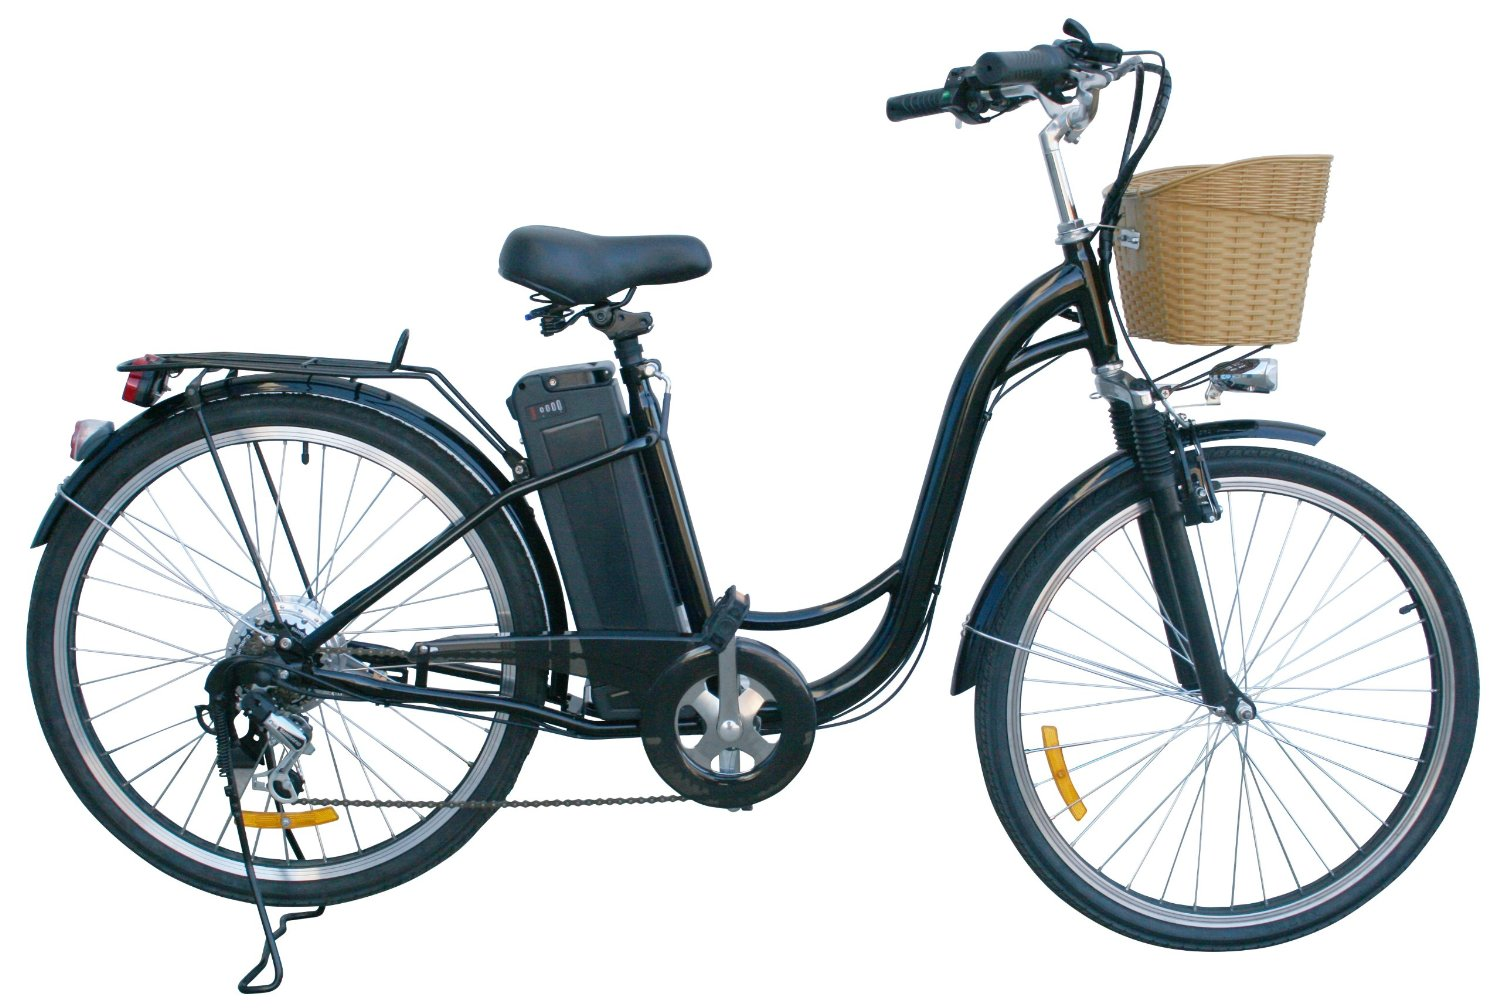 watseka xp cargo electric bicycle review slant. Black Bedroom Furniture Sets. Home Design Ideas